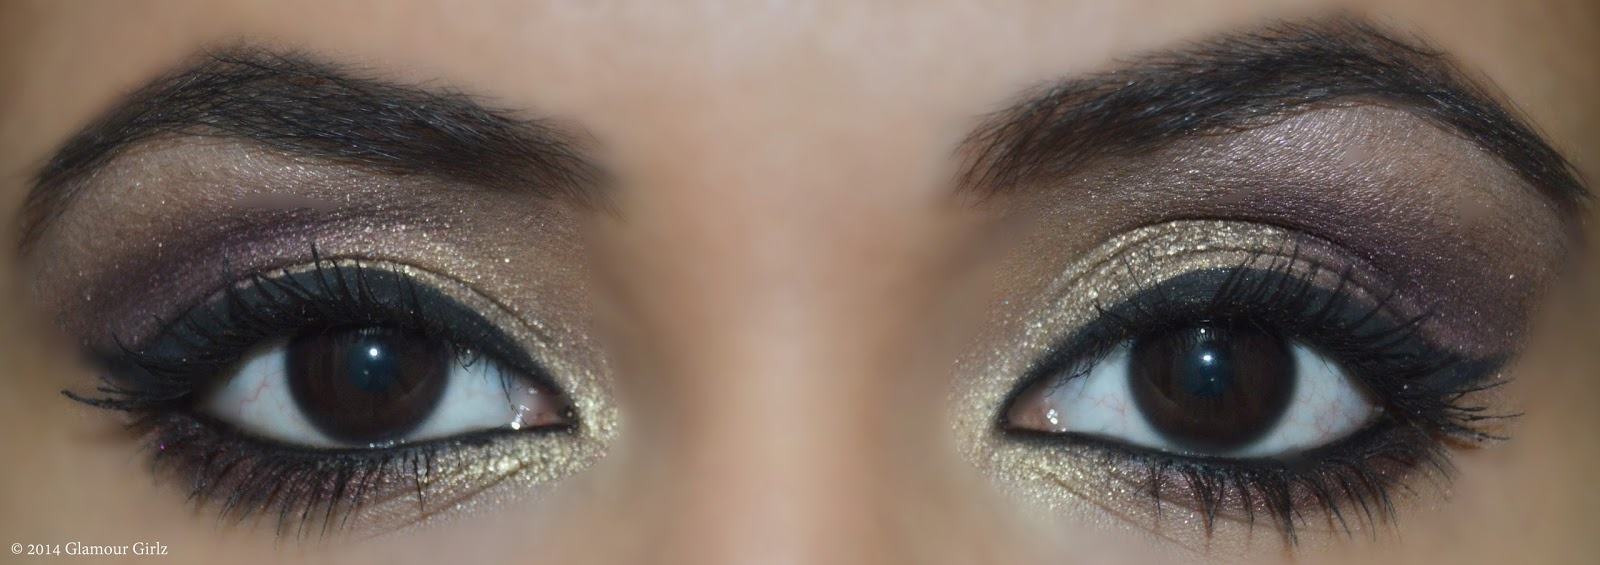 Completed look-Eye makeup tutorial.